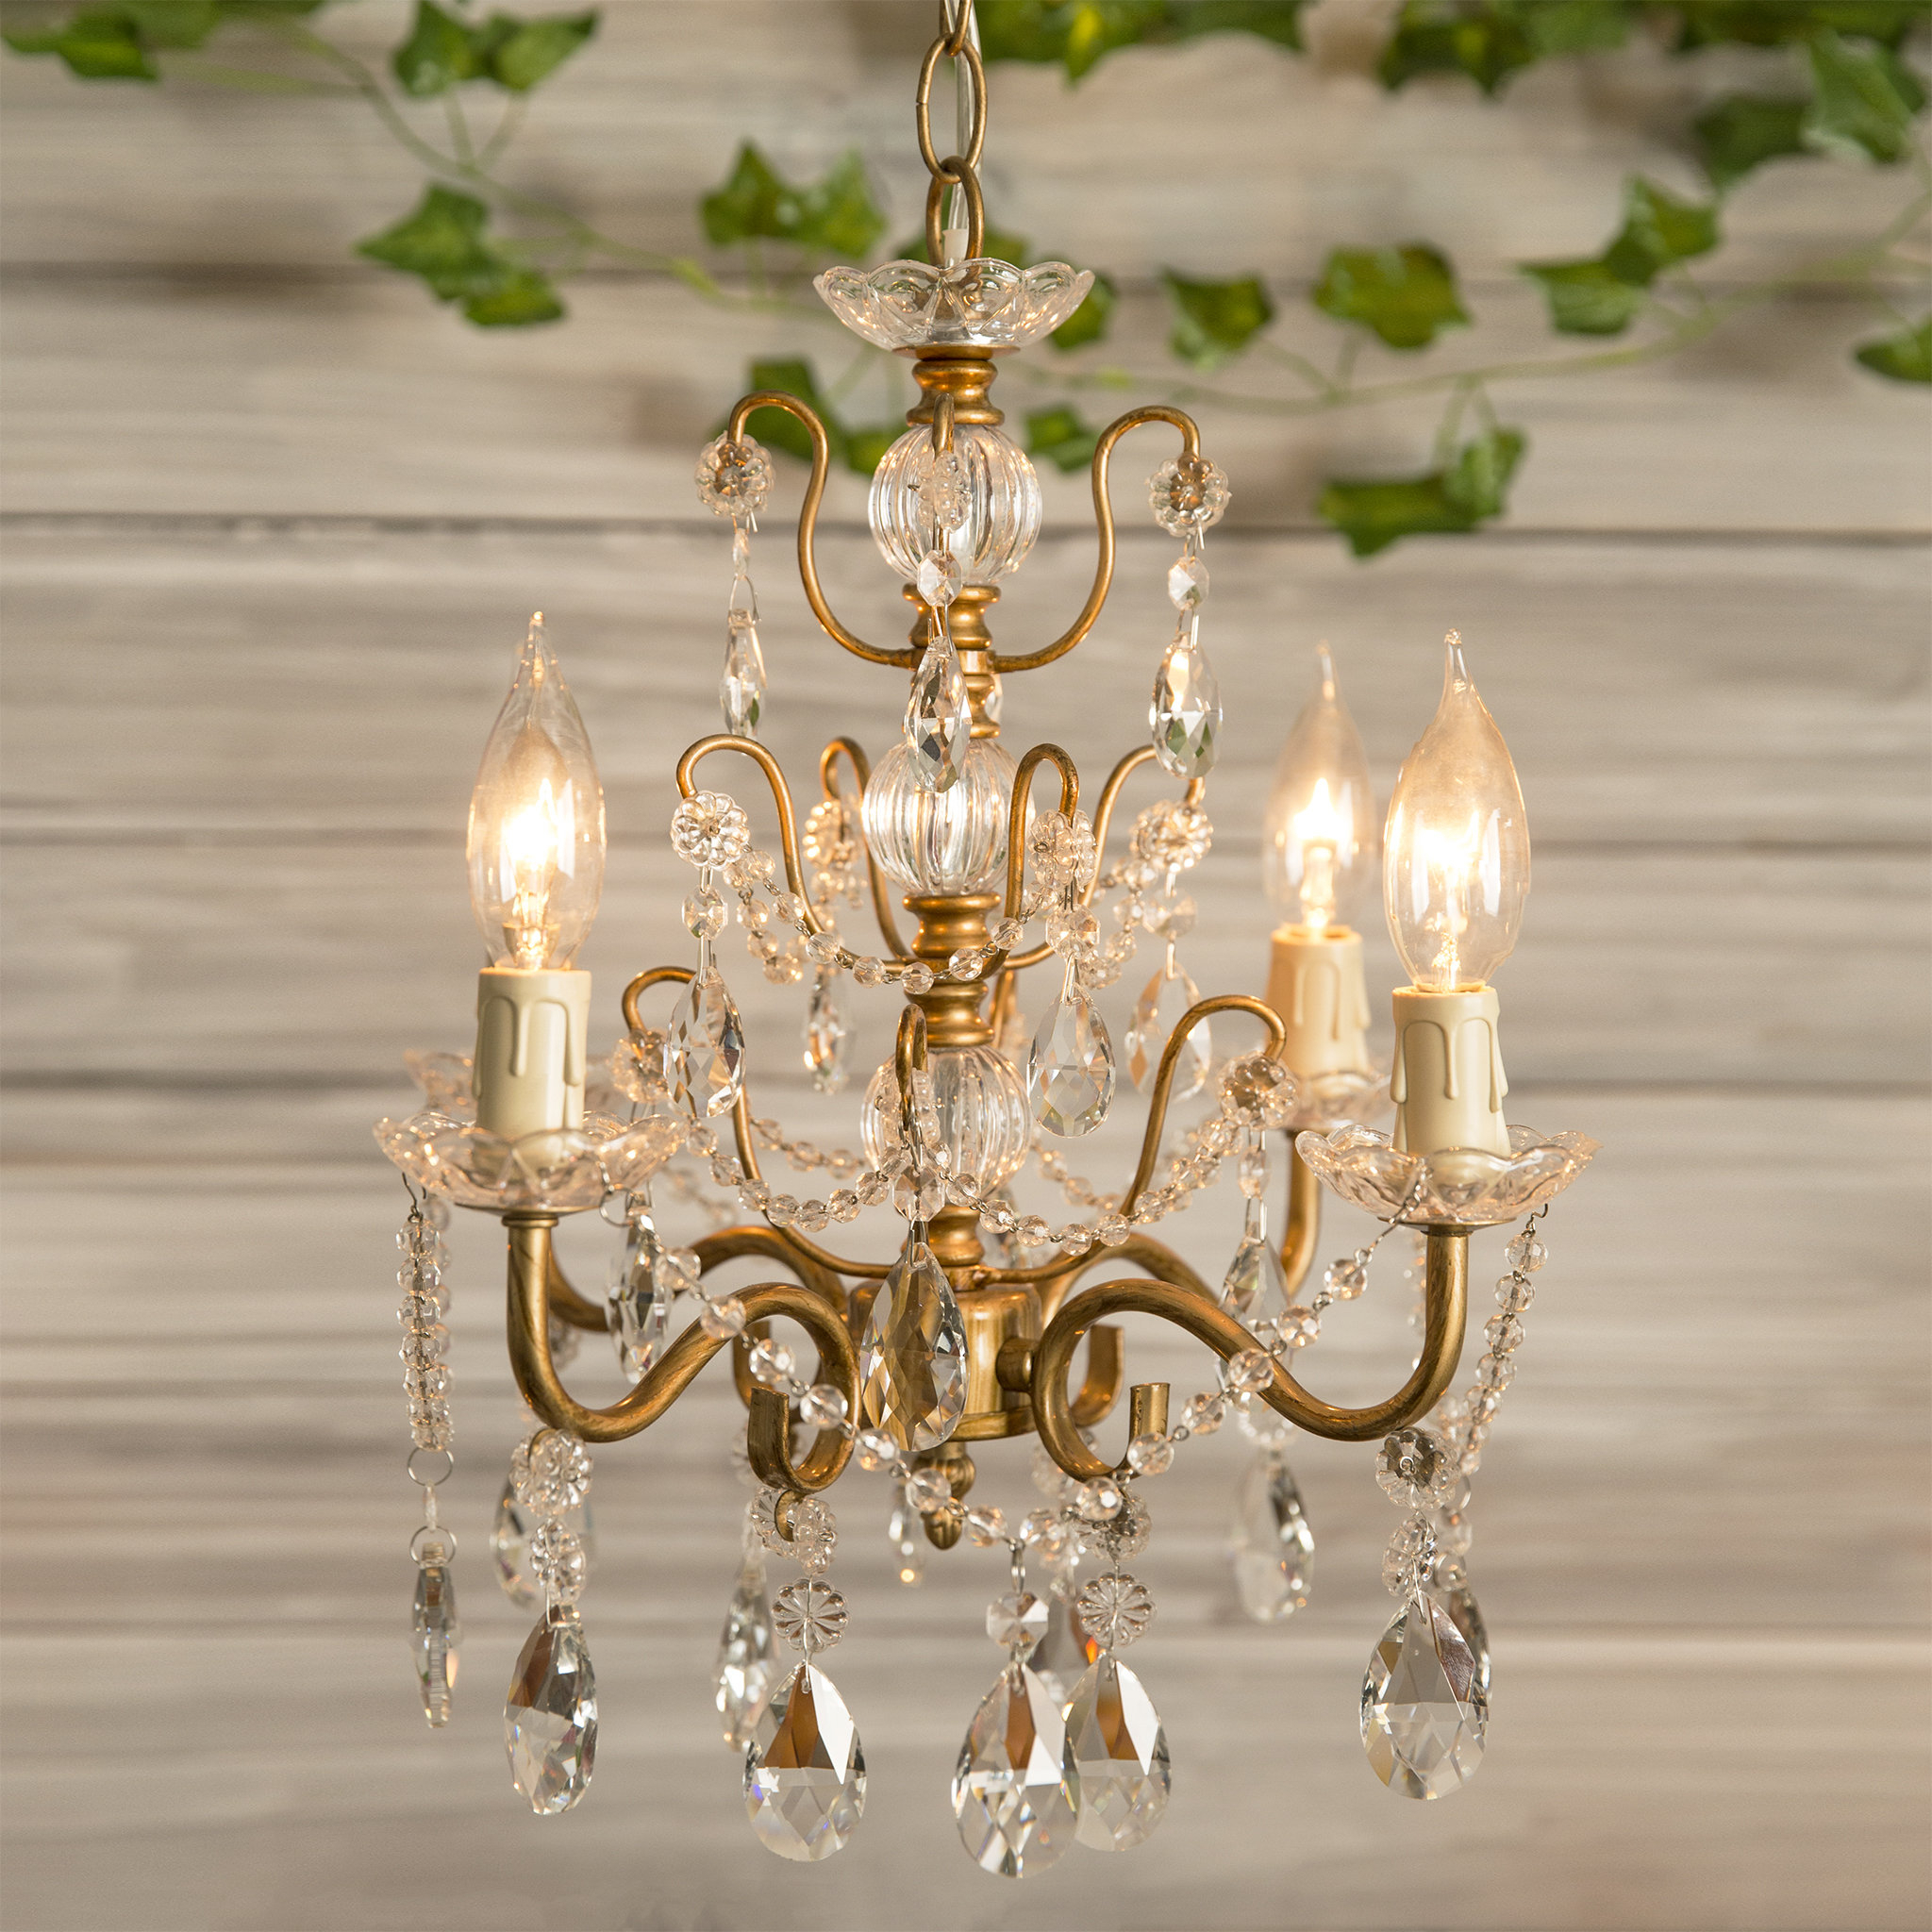 Current Blanchette 5 Light Candle Style Chandeliers Pertaining To Blanchette 4 Light Candle Style Chandelier (View 9 of 20)